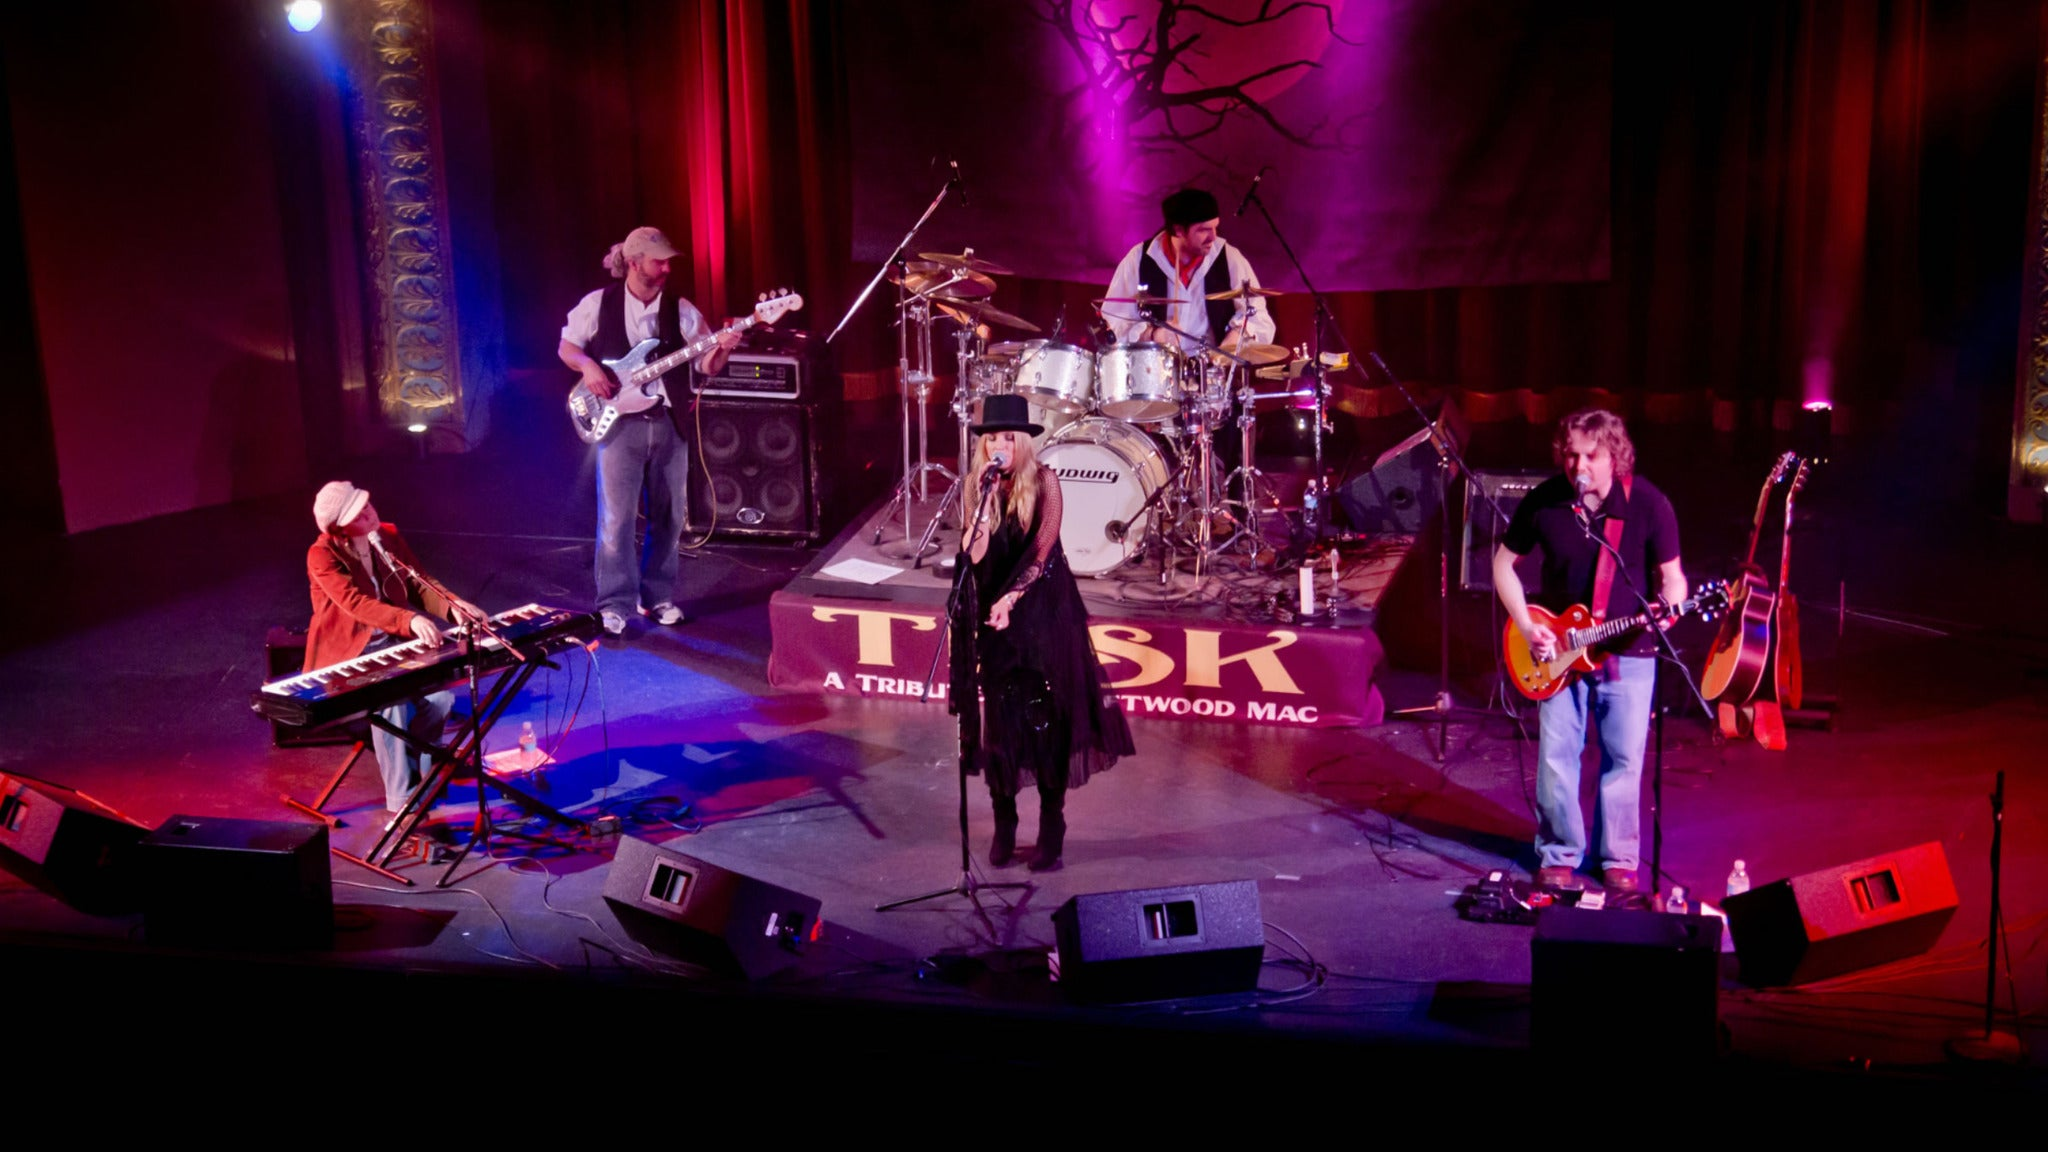 TUSK: A Tribute to Fleetwood Mac pre-sale password